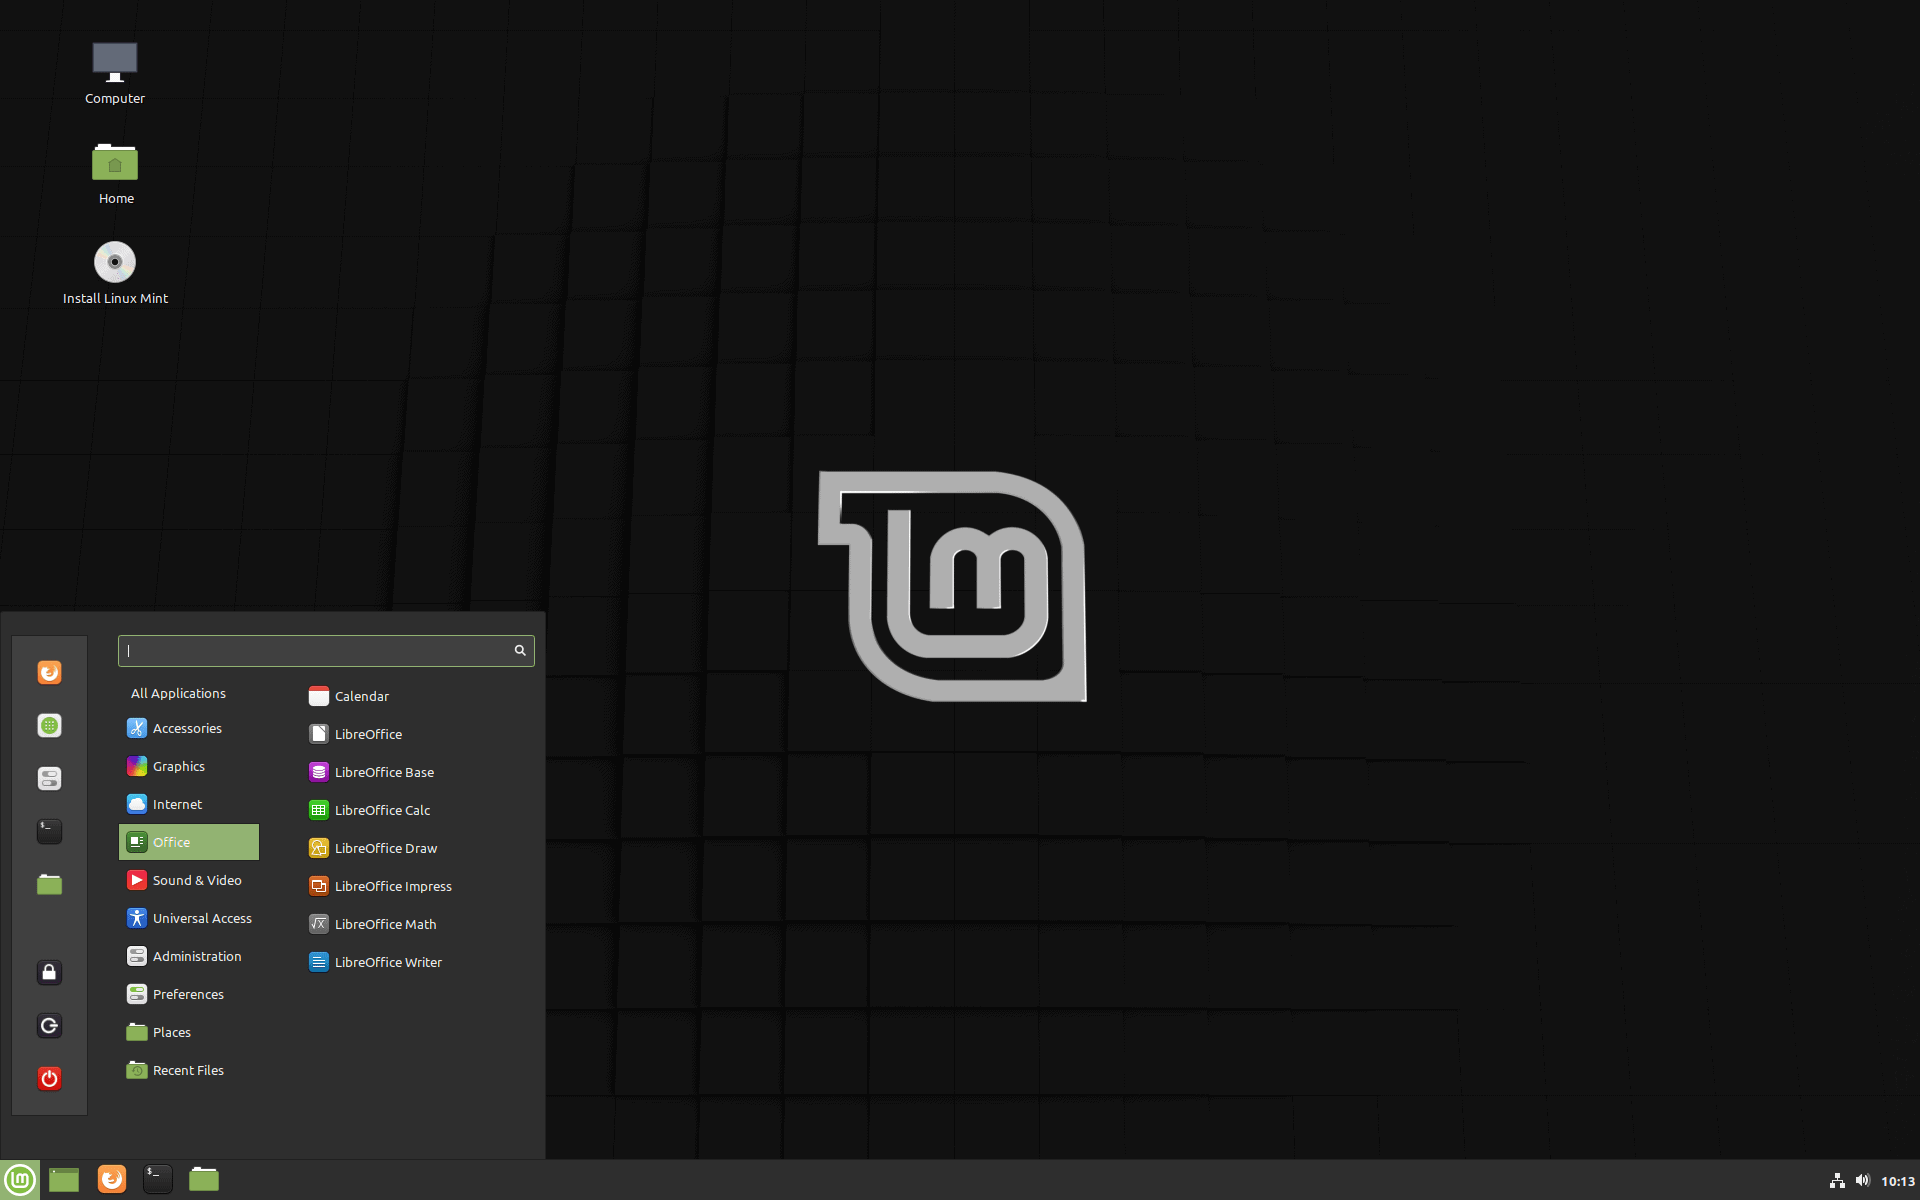 Linux Mint 19.3 has been released